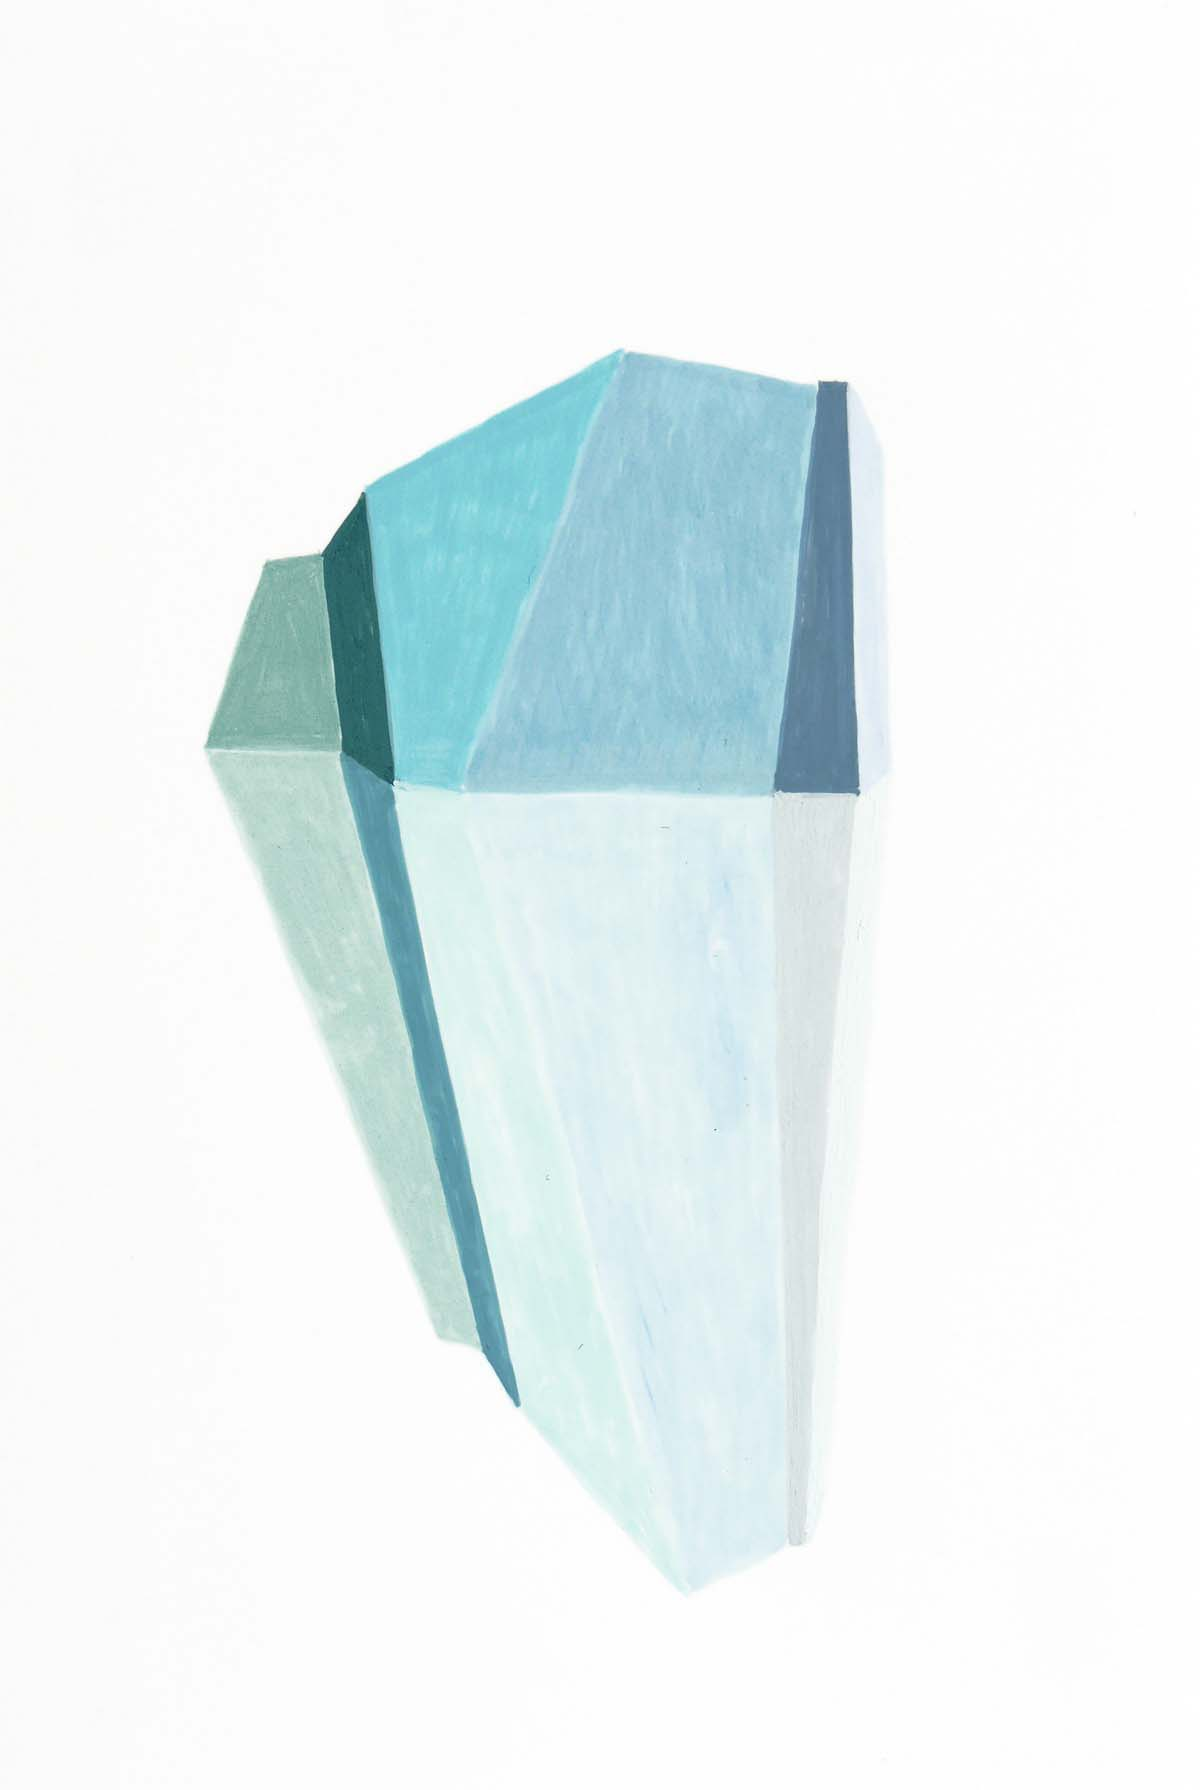 Crystal 16, 10 x 15 cm, Gouache on photographic paper, 2016